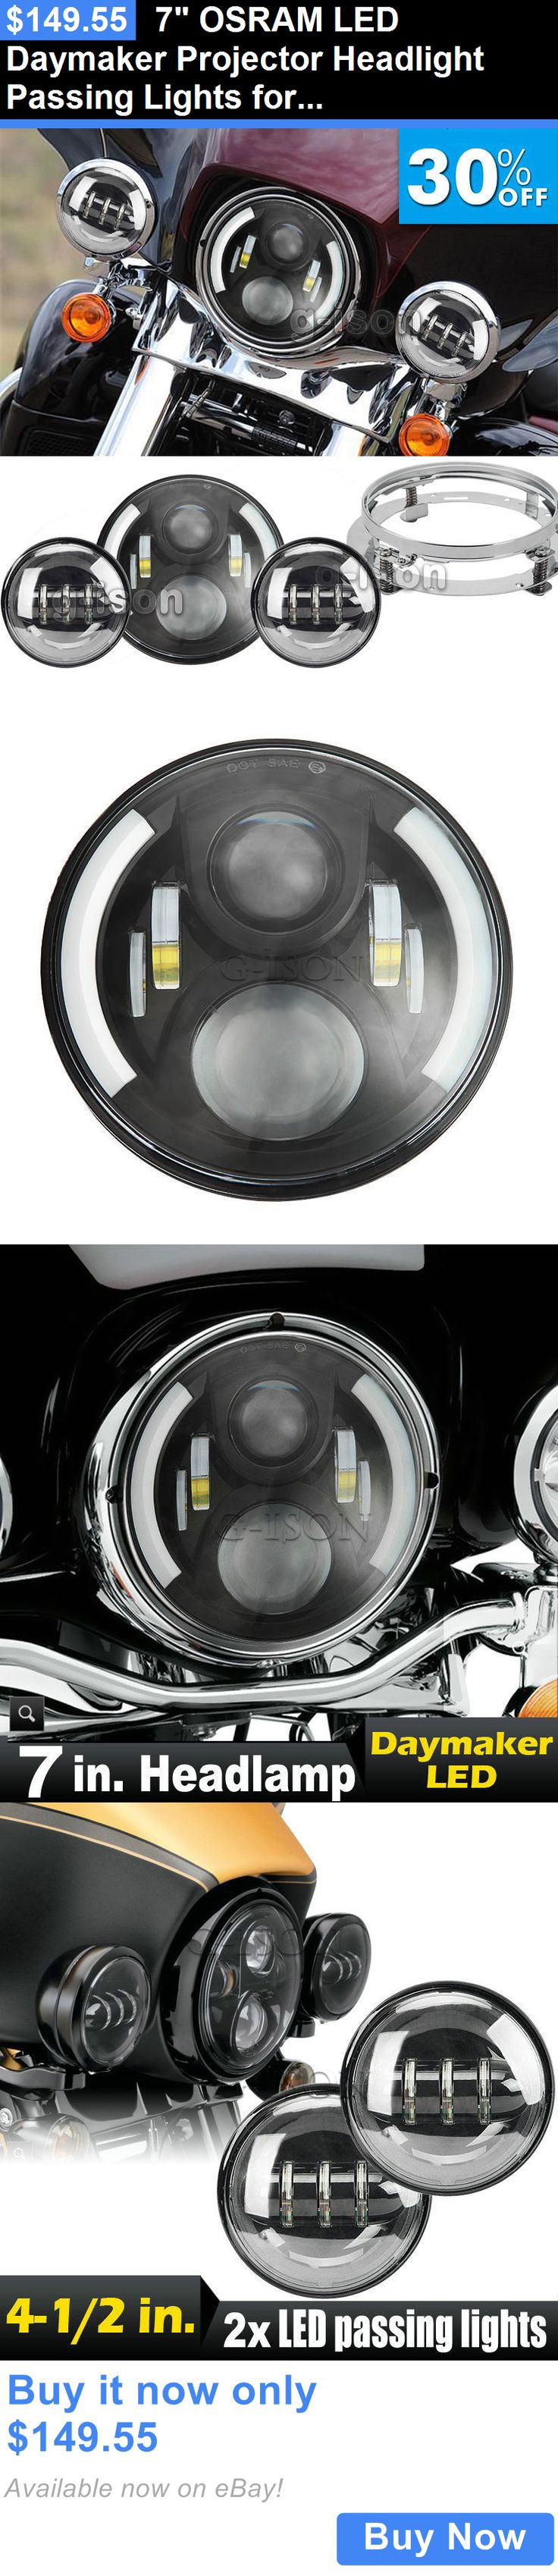 motorcycle parts: 7 Osram Led Daymaker Projector Headlight Passing Lights For Harley Davidson New BUY IT NOW ONLY: $149.55